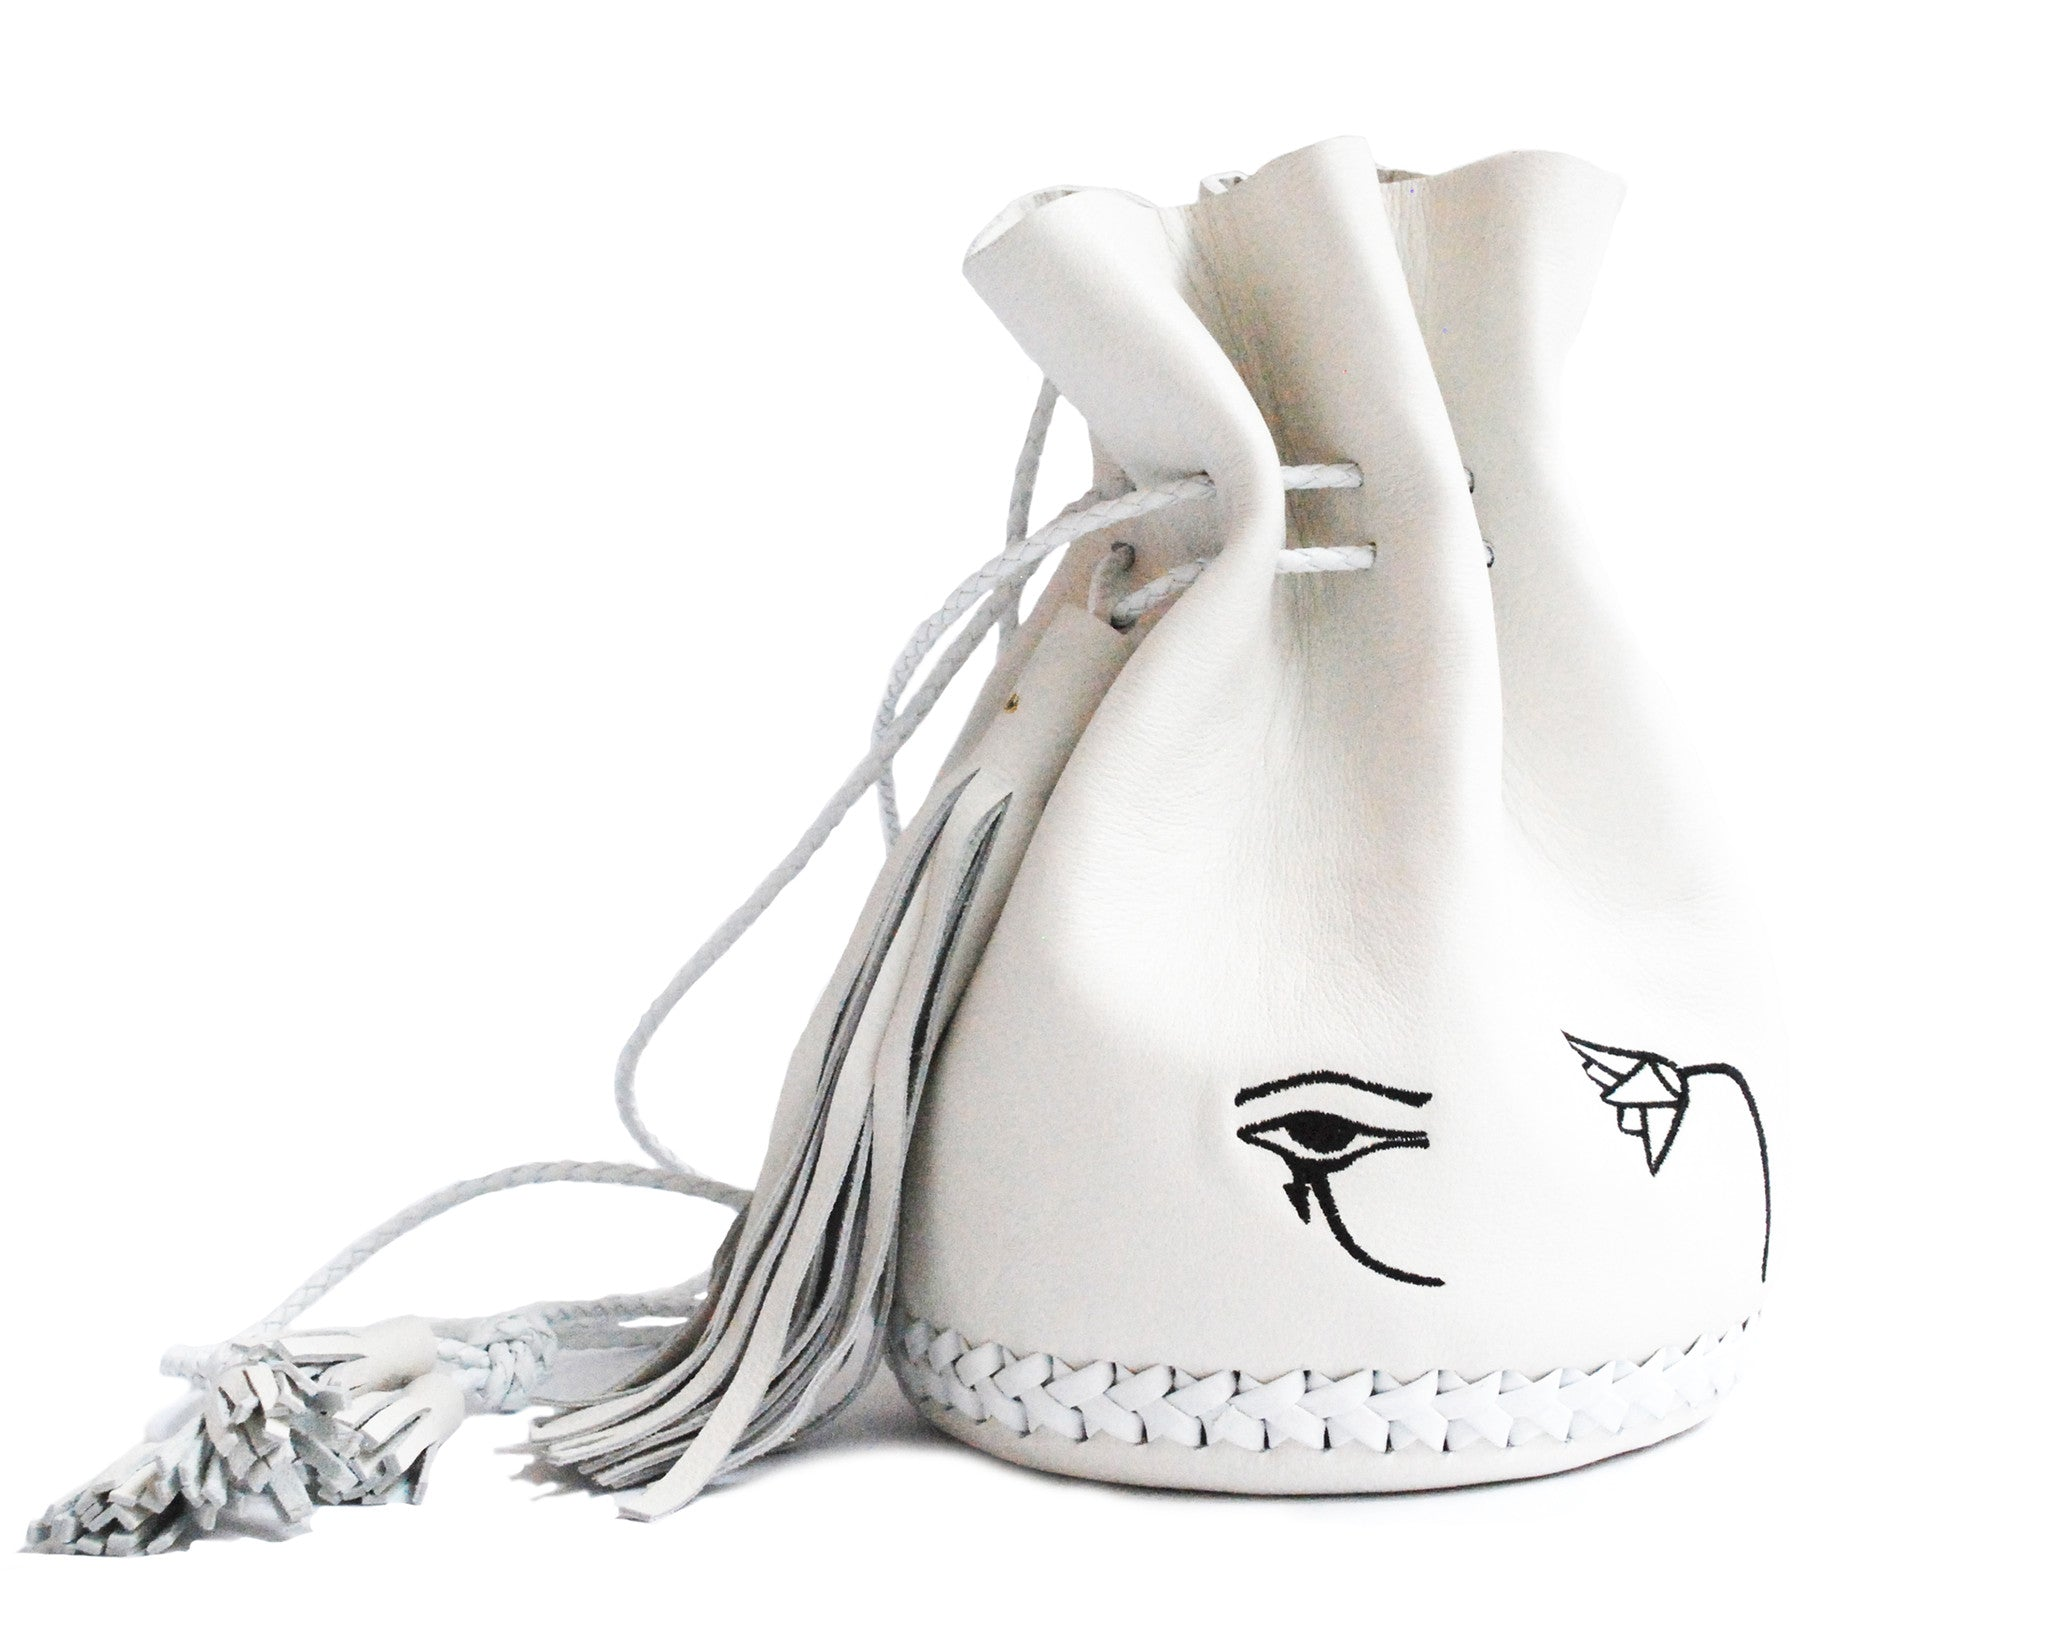 Embroidered Egyptian Symbols Eye of Horus Djet Snake Owl Lotus Flower Sesen Leather Bullet Bag Wendy Nichol Designer Handbag Purse Handmade in NYC New York City Eye of Horus Bucket Drawstring Pouch Bag Large Fringe Tassel Tassels